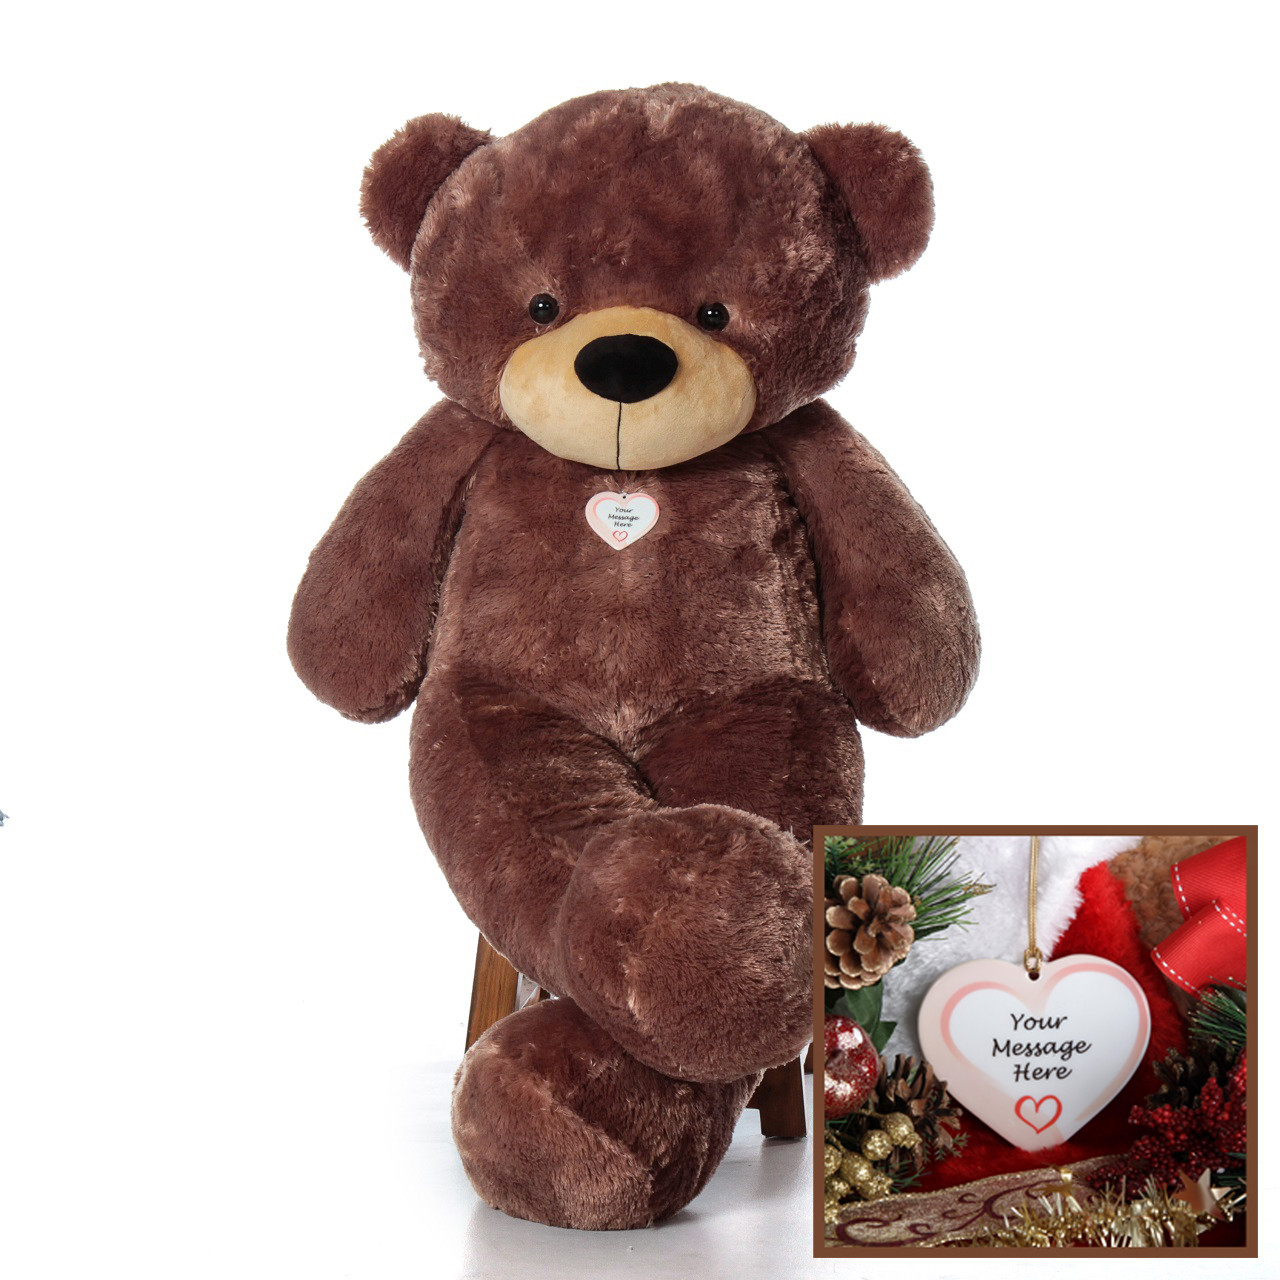 5 Foot Mocha Brown Teddy Bear with Personalized Christmas Ornament Package - Life Size Giant Cuddles